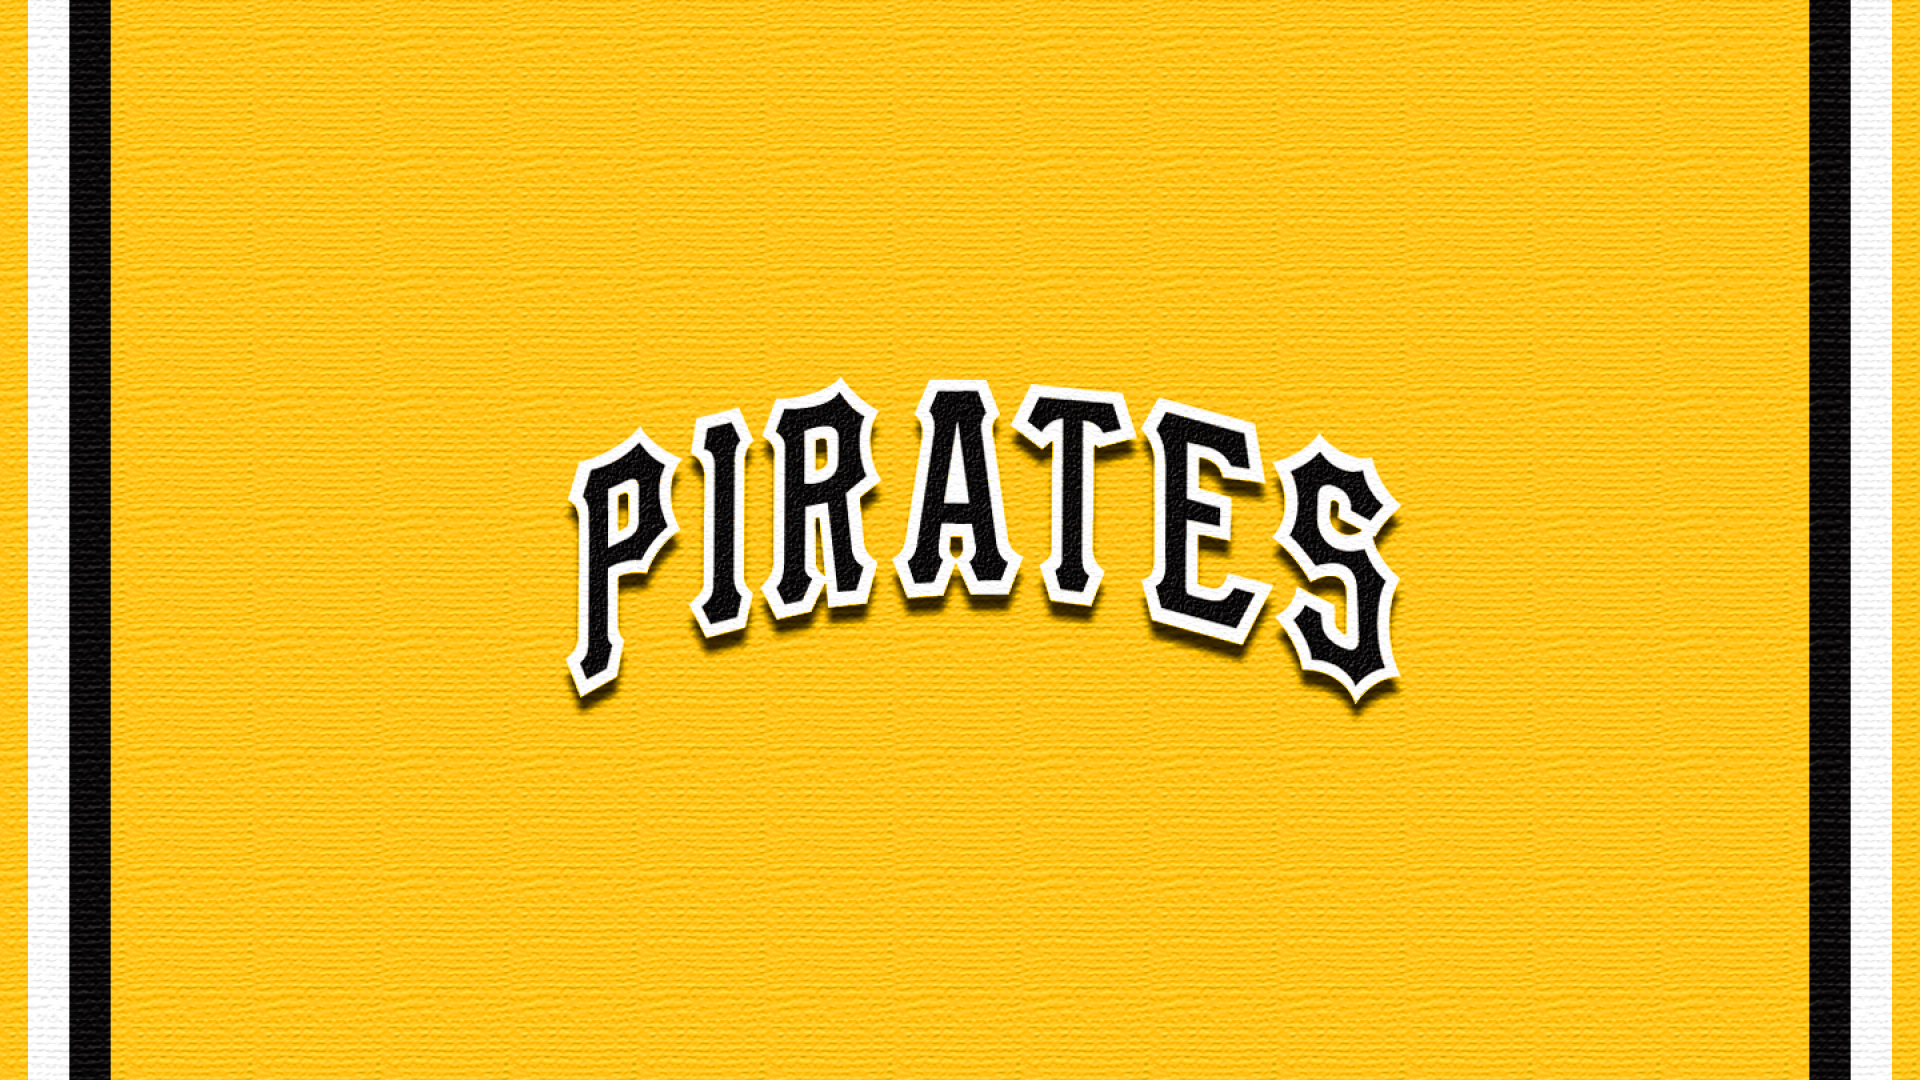 Pittsburgh Pirates HD Wallpaper HD Wallpapers HD Backgrounds 1920x1080